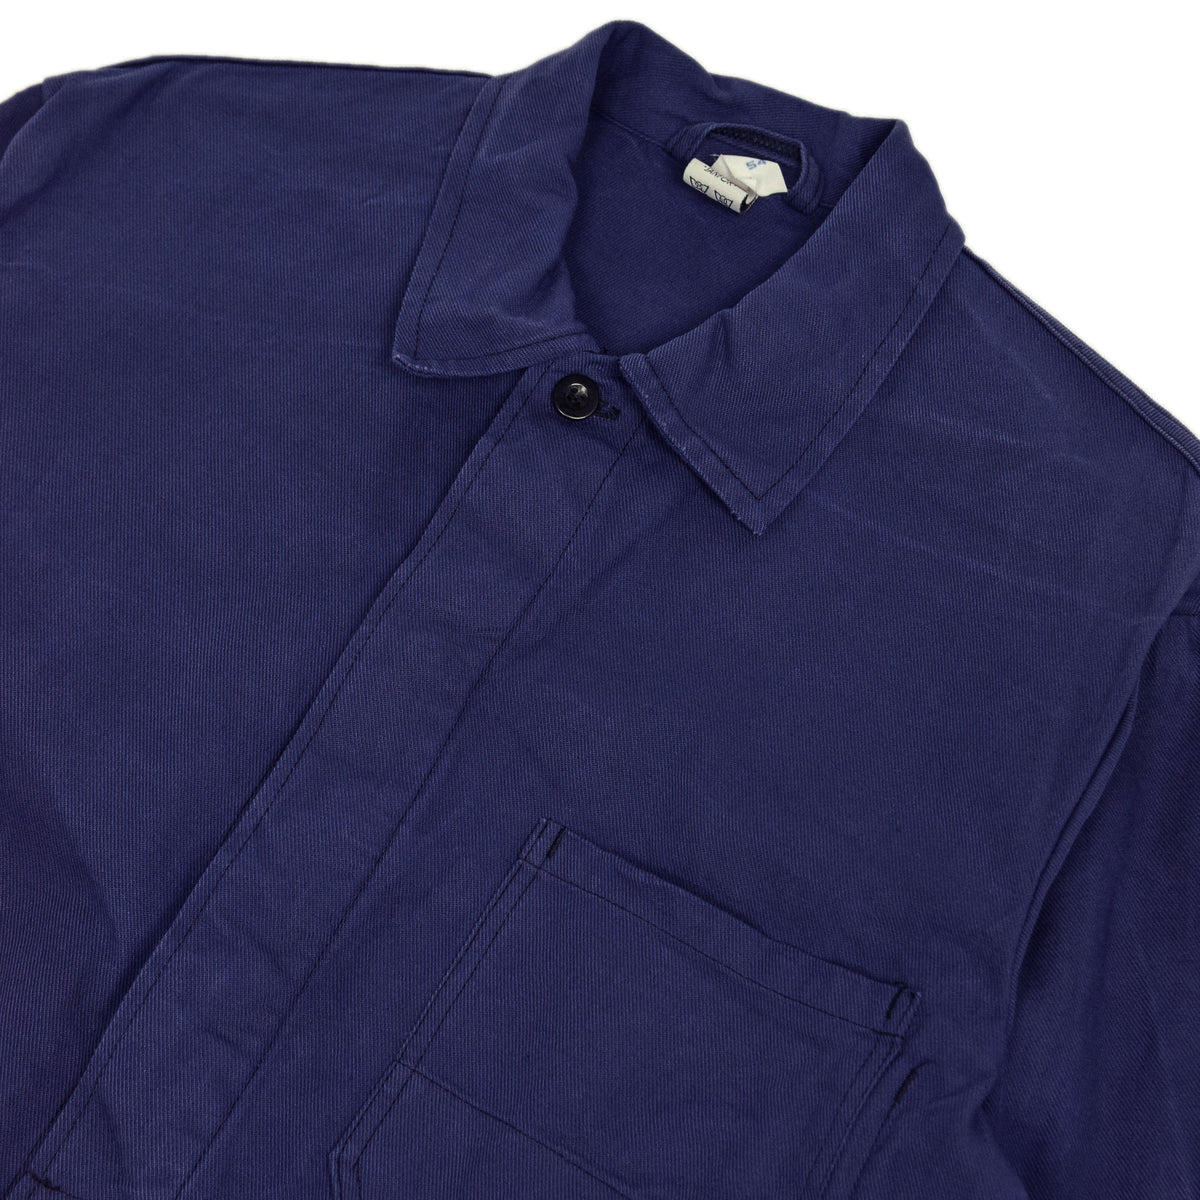 Vintage Blue French Style Worker Sanforized Cotton Twill Chore Jacket L collar